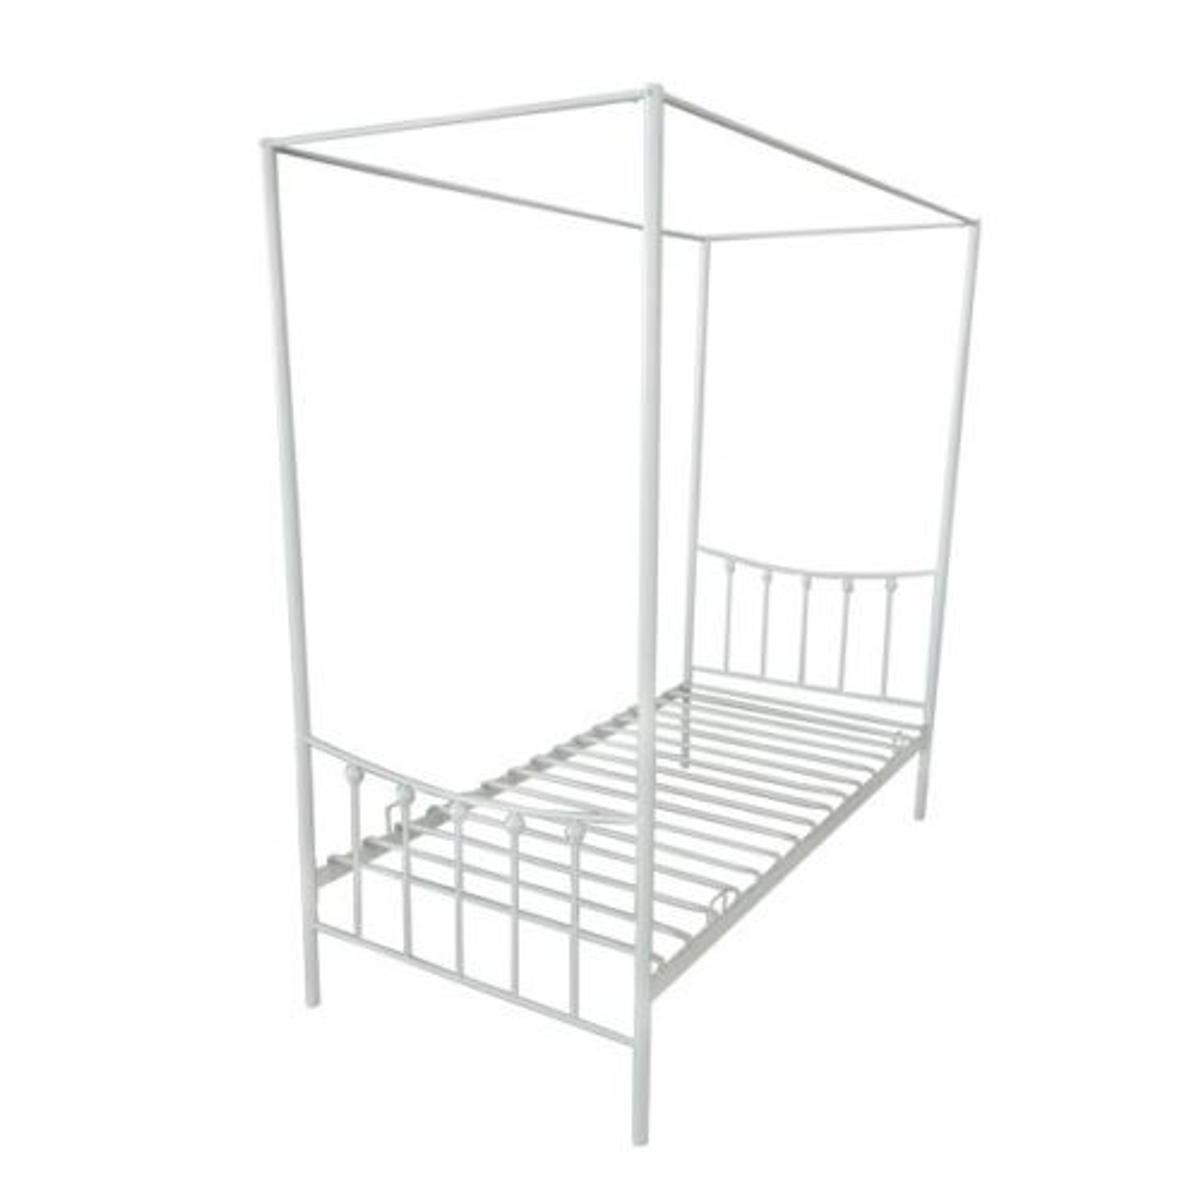 Single Four Poster Bed 4 Poster Single Bed Frame